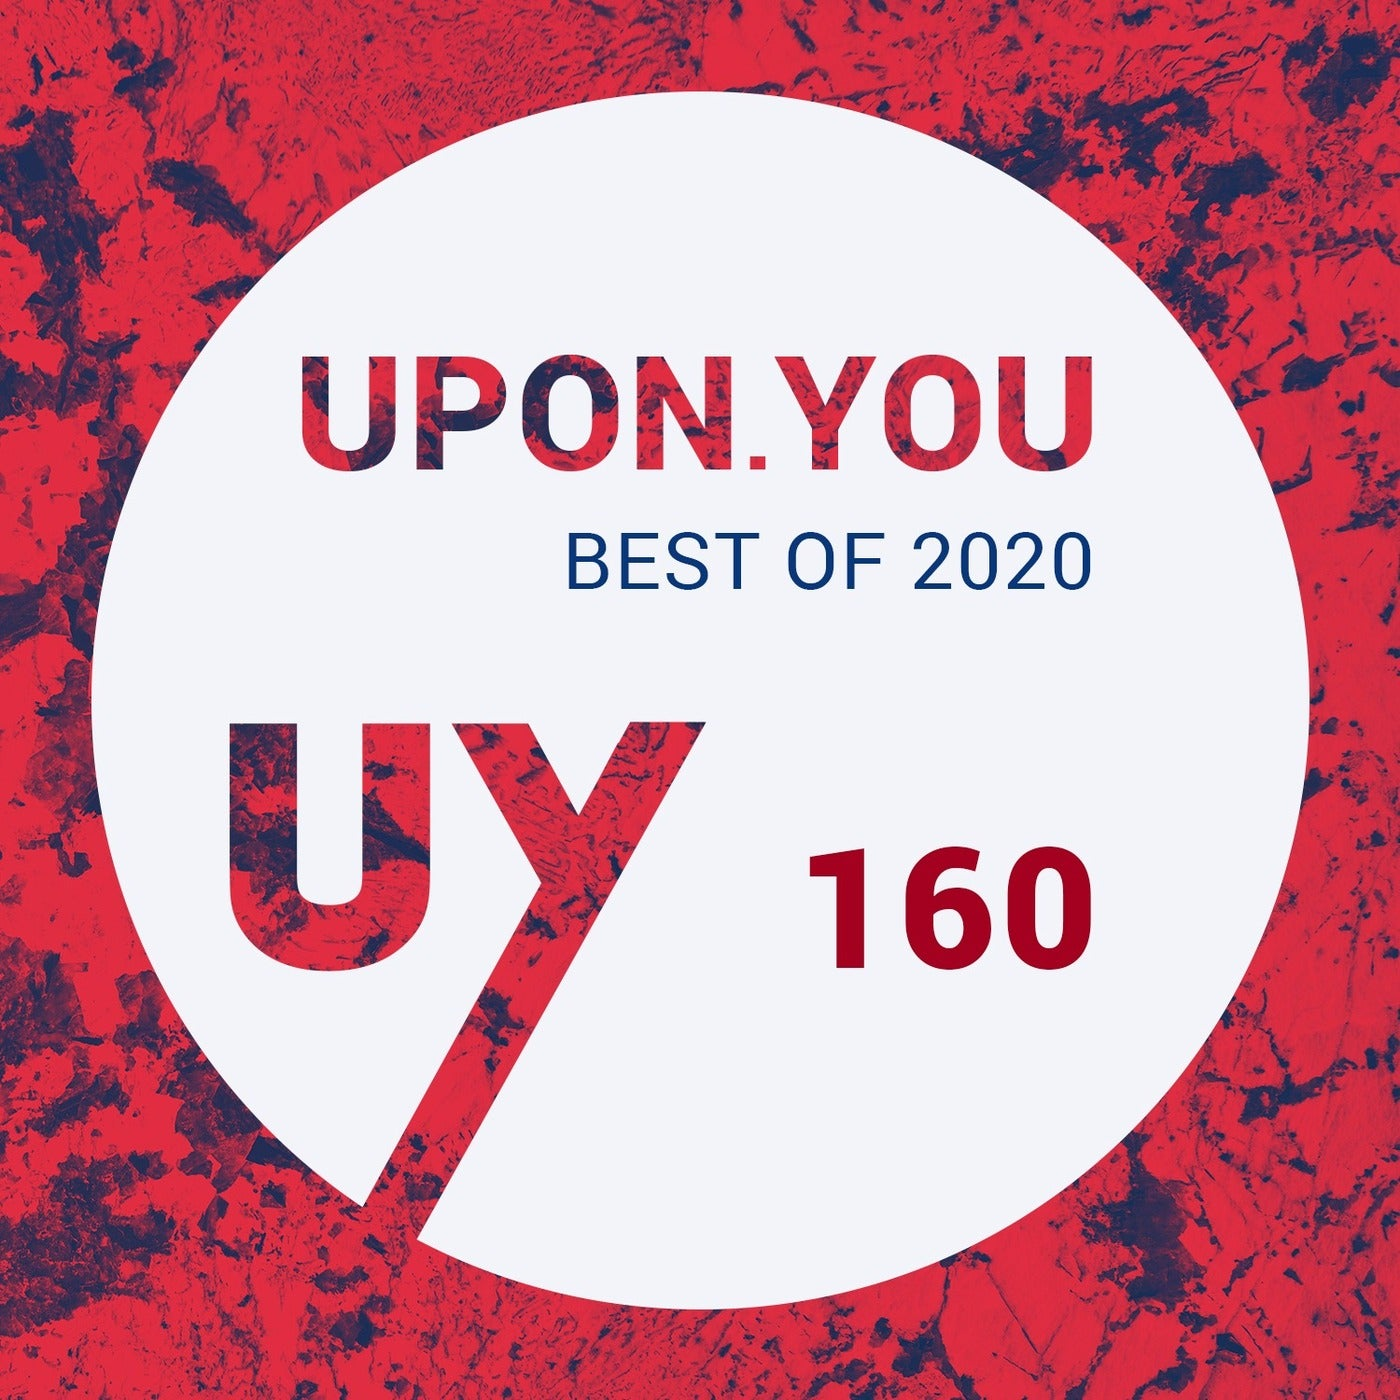 Upon You Best of 2020